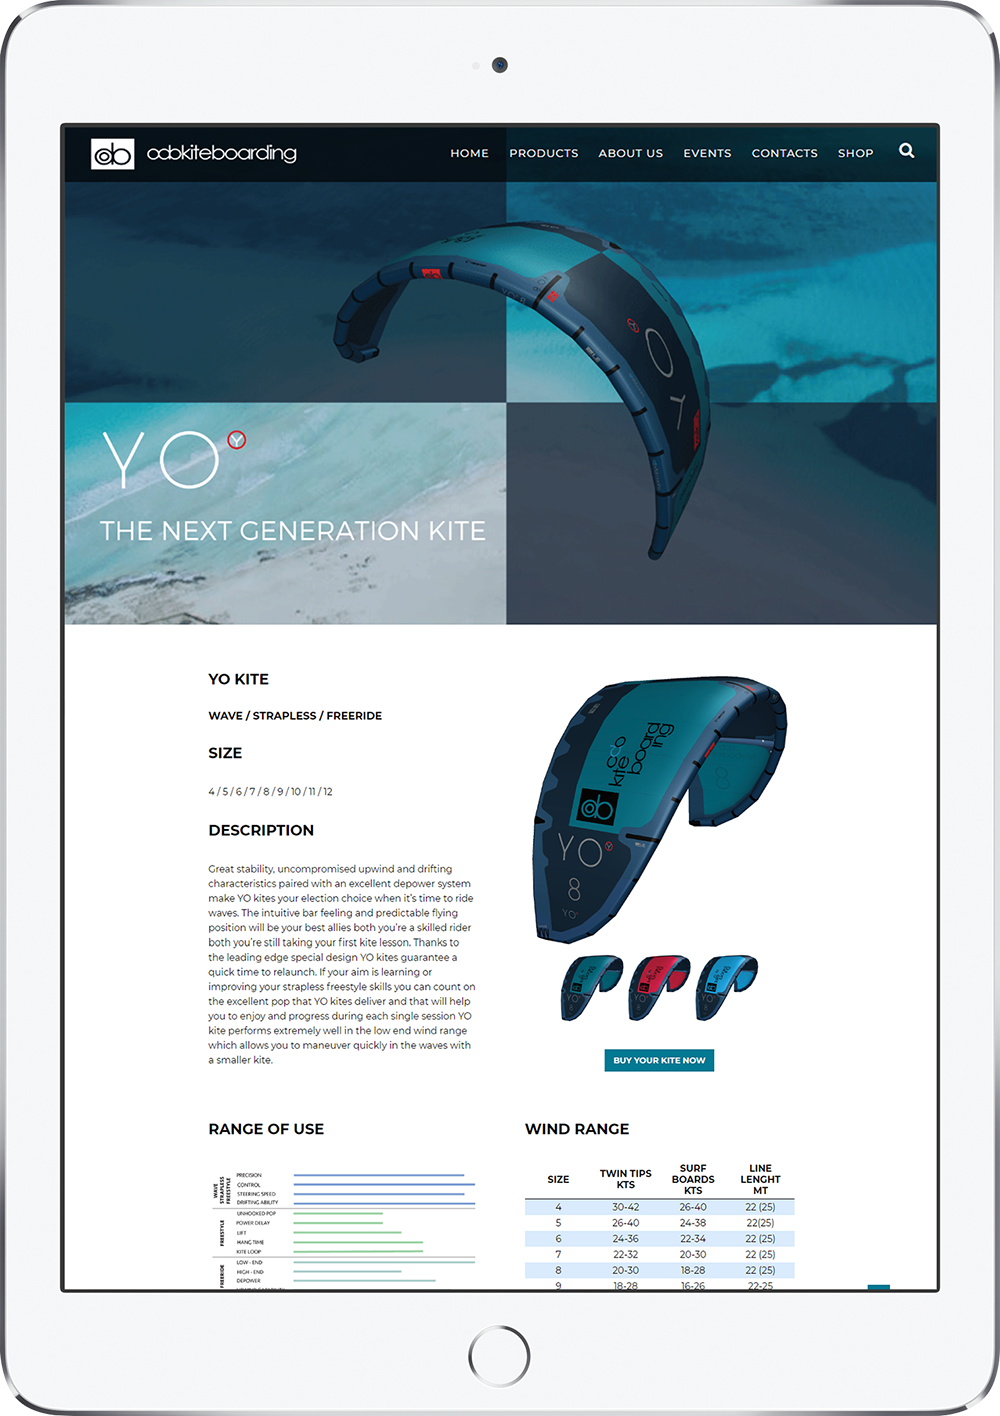 odo kiteboarding ipad version